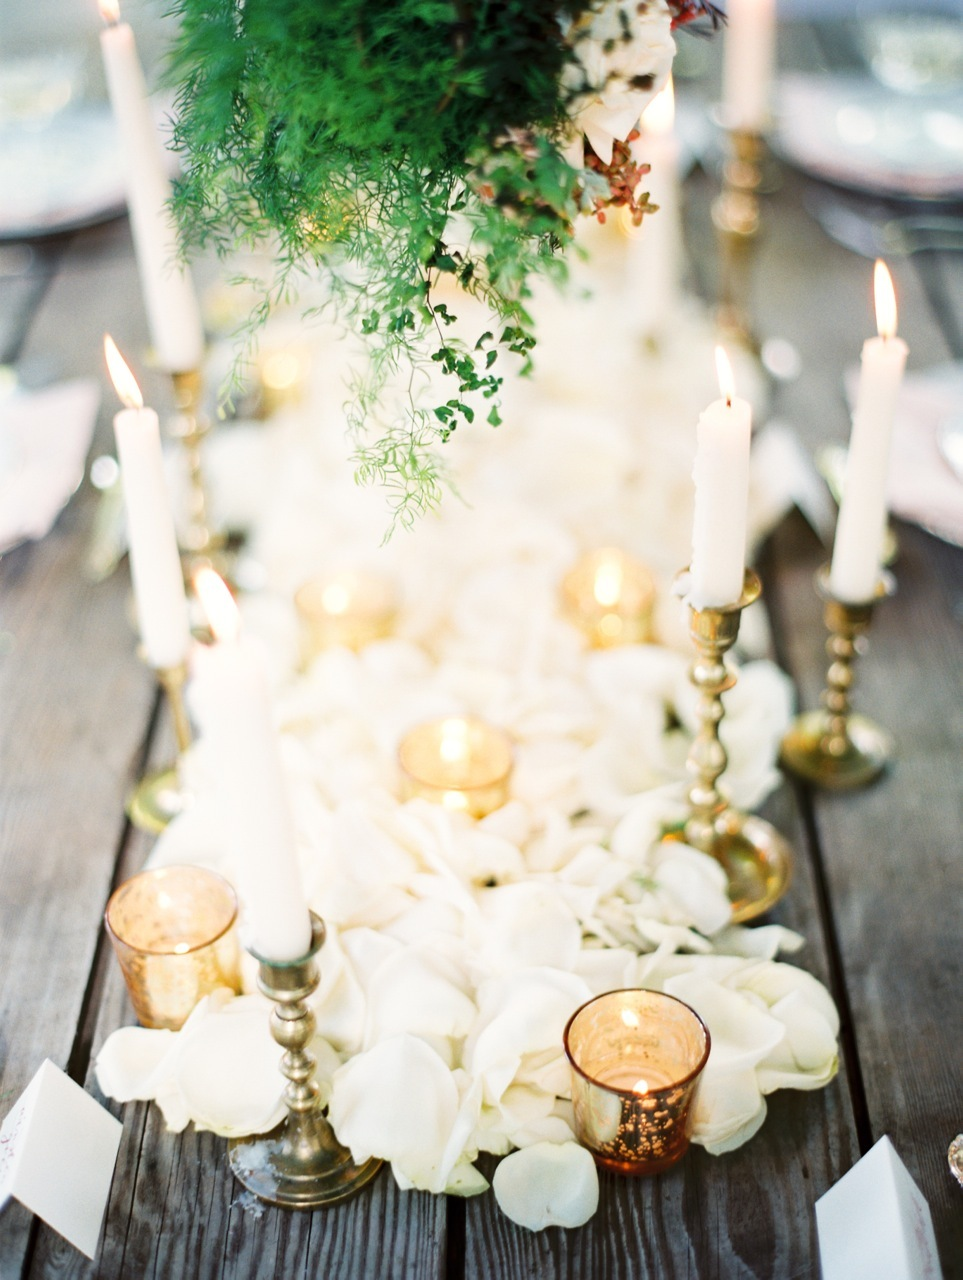 gold, Rustic, Romantic, Rose, Petals, Elegance, Votives, Candlelight, Clover, Love poems styled wedding